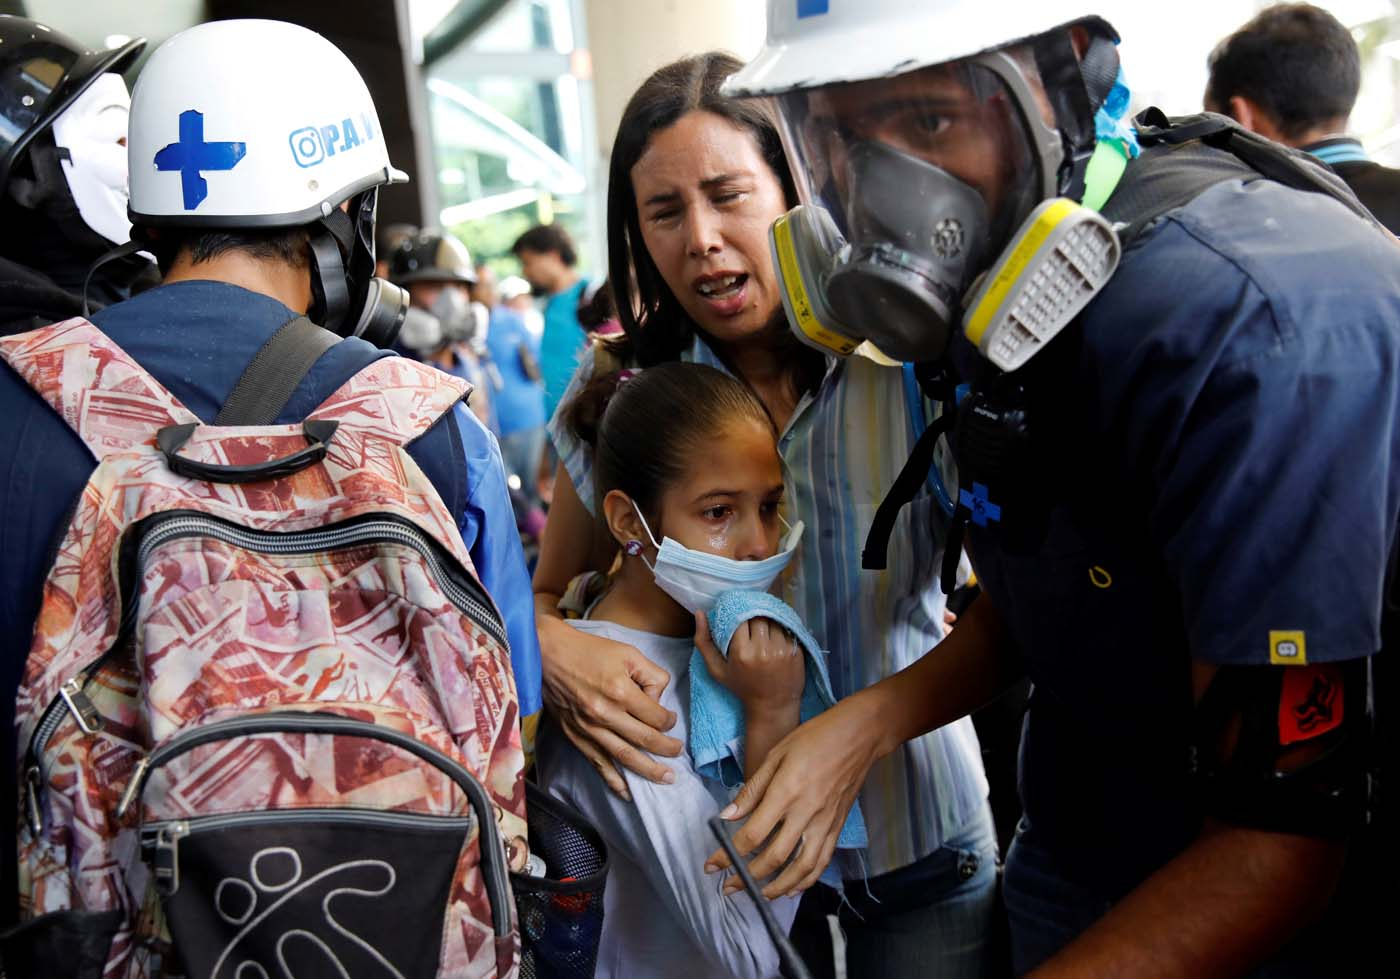 A woman and a girl get medical attention outside a shopping mall after smoke from tear gas fired by security forces got inside of it during clashes at a rally against Venezuelan President Nicolas Maduro's government in Caracas, Venezuela, July 6, 2017. REUTERS/Carlos Garcia Rawlins